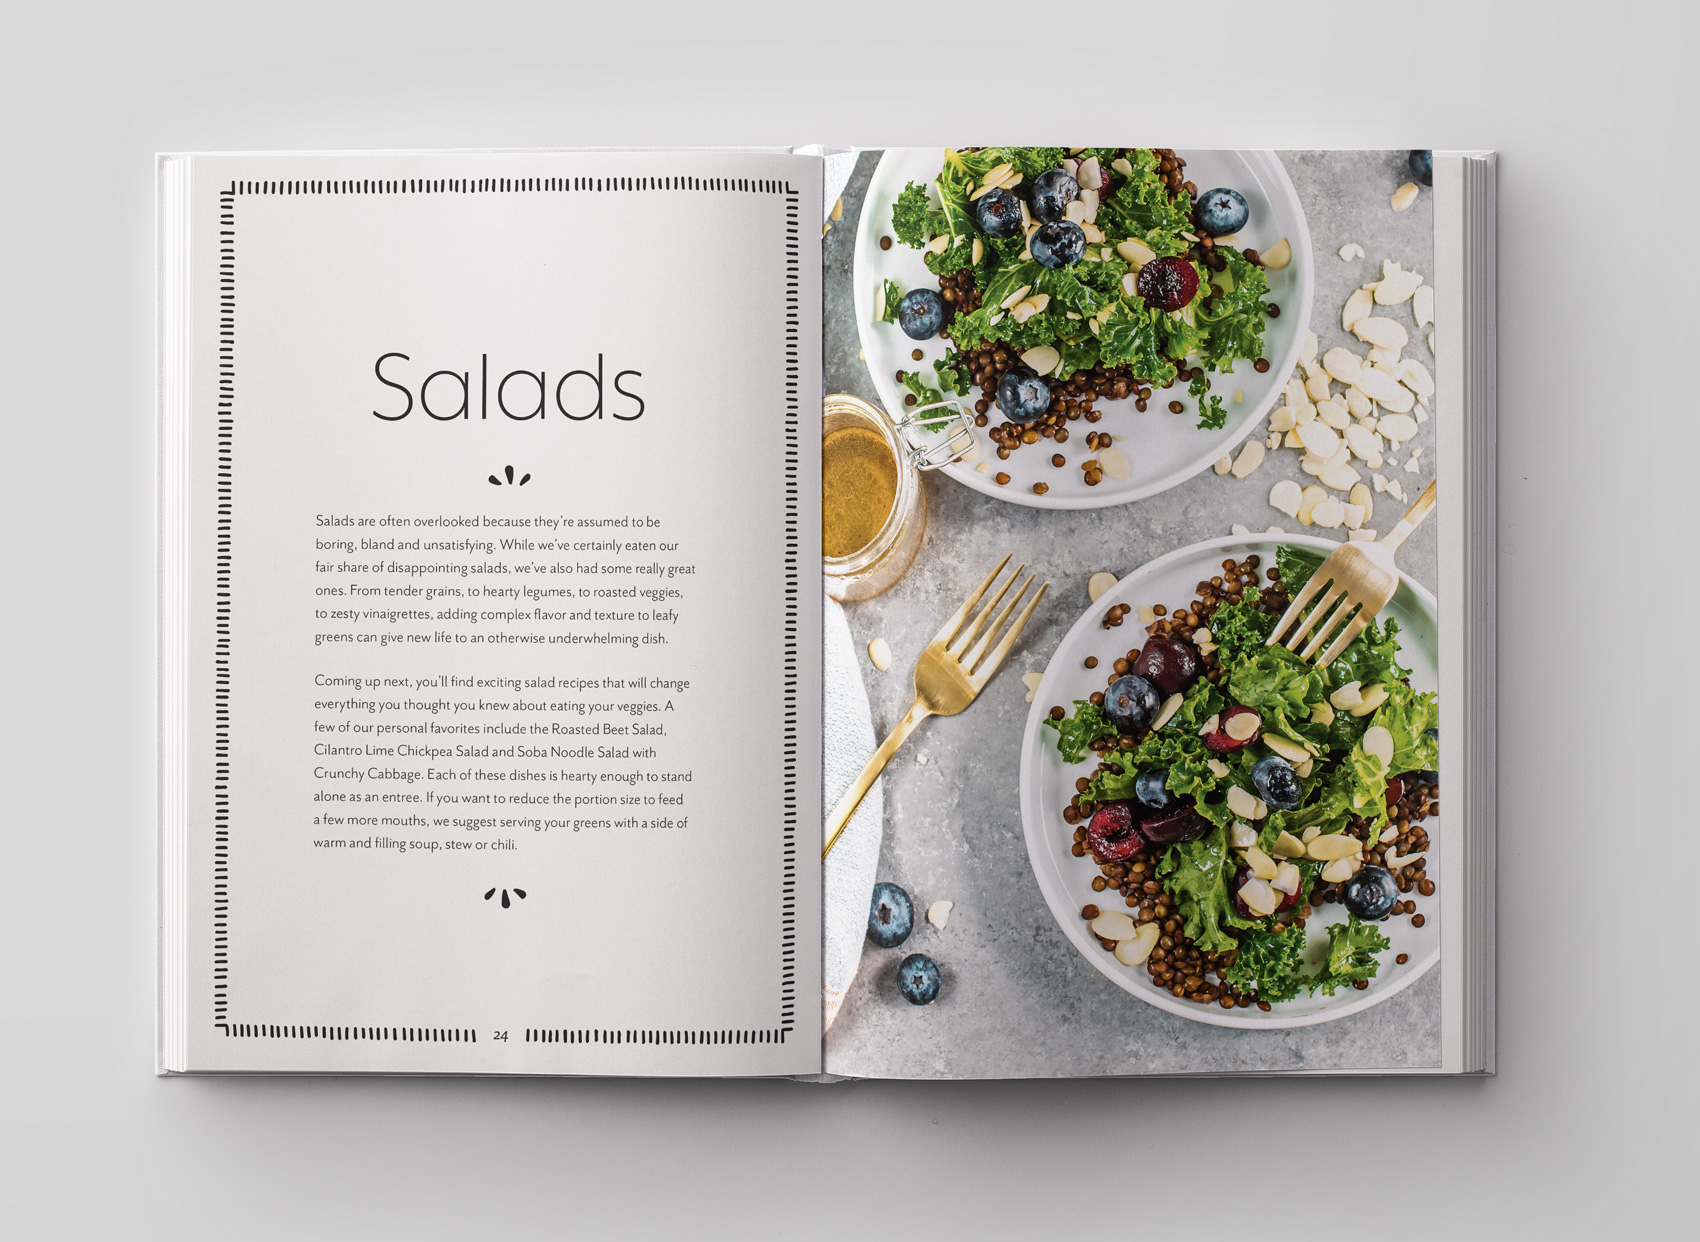 frugal vegan cookbook salad introduction page for healthy vegan recipes